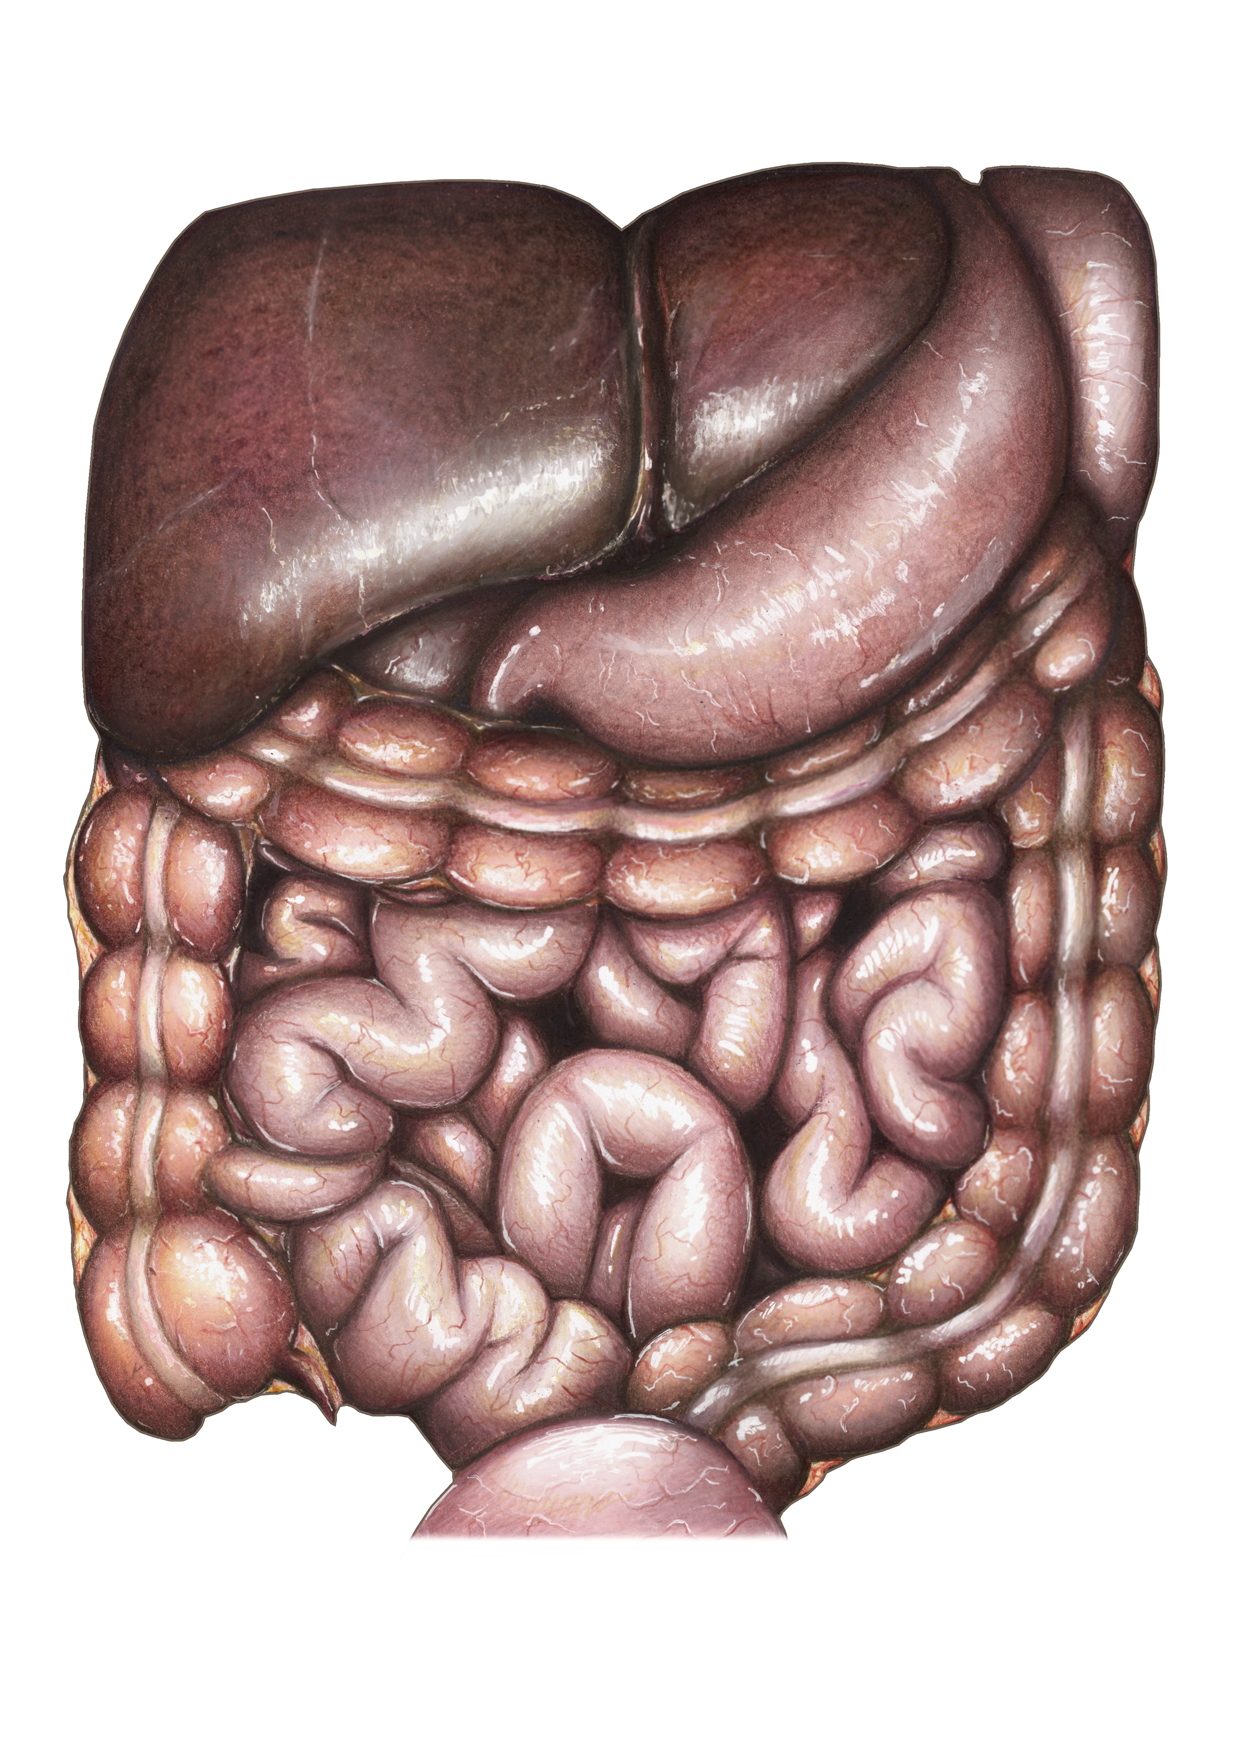 Interior Abdominal Cavity View: Liver, Gall bladder, Stomach, Spleen, Large and Small Intestines, Bladder